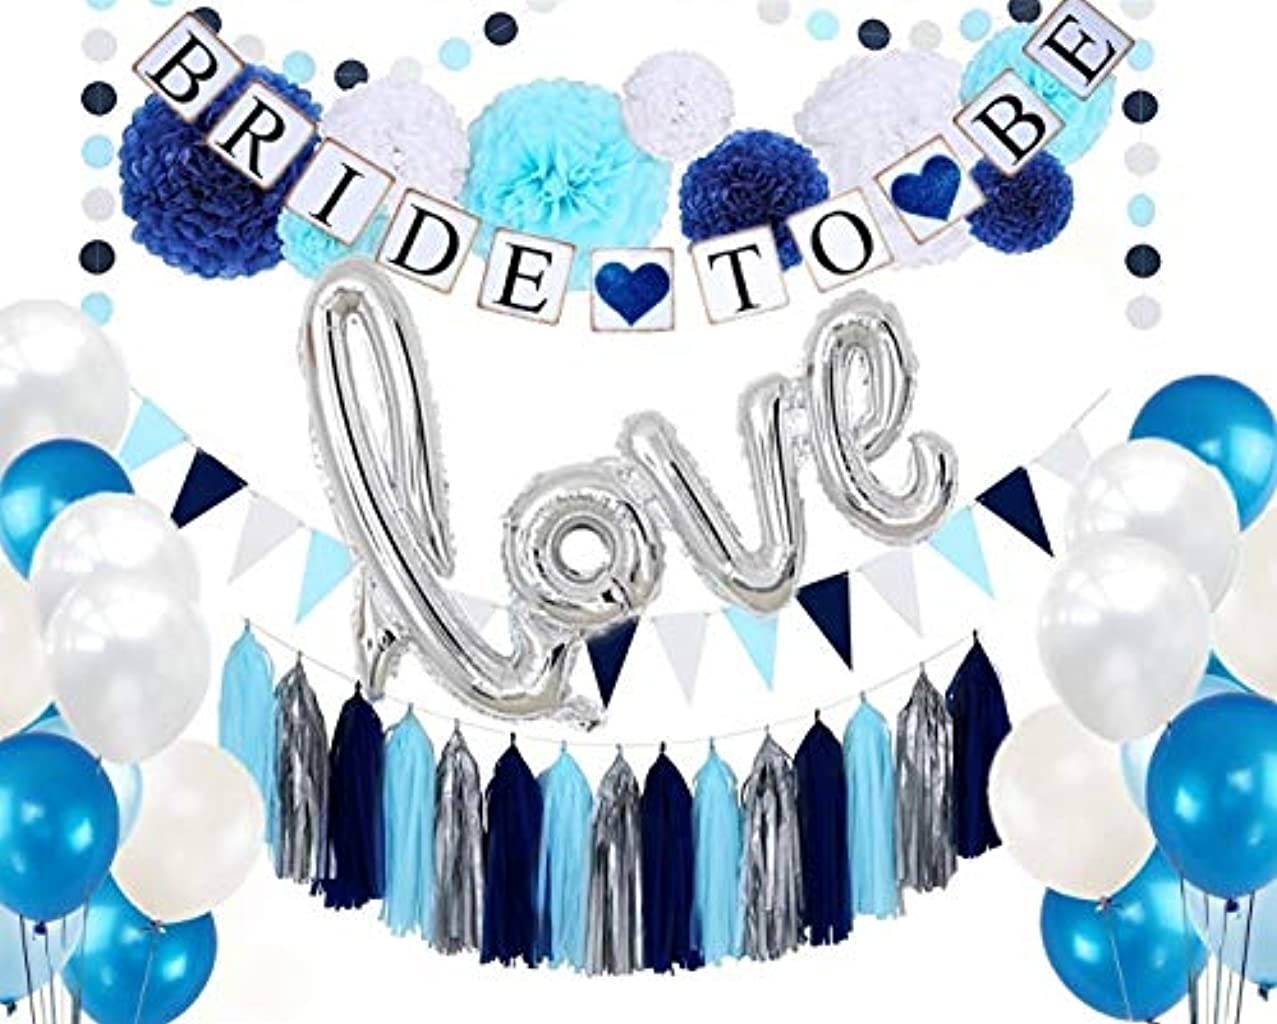 DOYOLLA Navy Bridal Shower Decorations Kit 53pcs - Tissue Paper Flowers, Navy Bride to Be Banner, Balloons, Triangle Bunting, Tassel Garland for Nautical Fishing Theme Wedding Party Decor